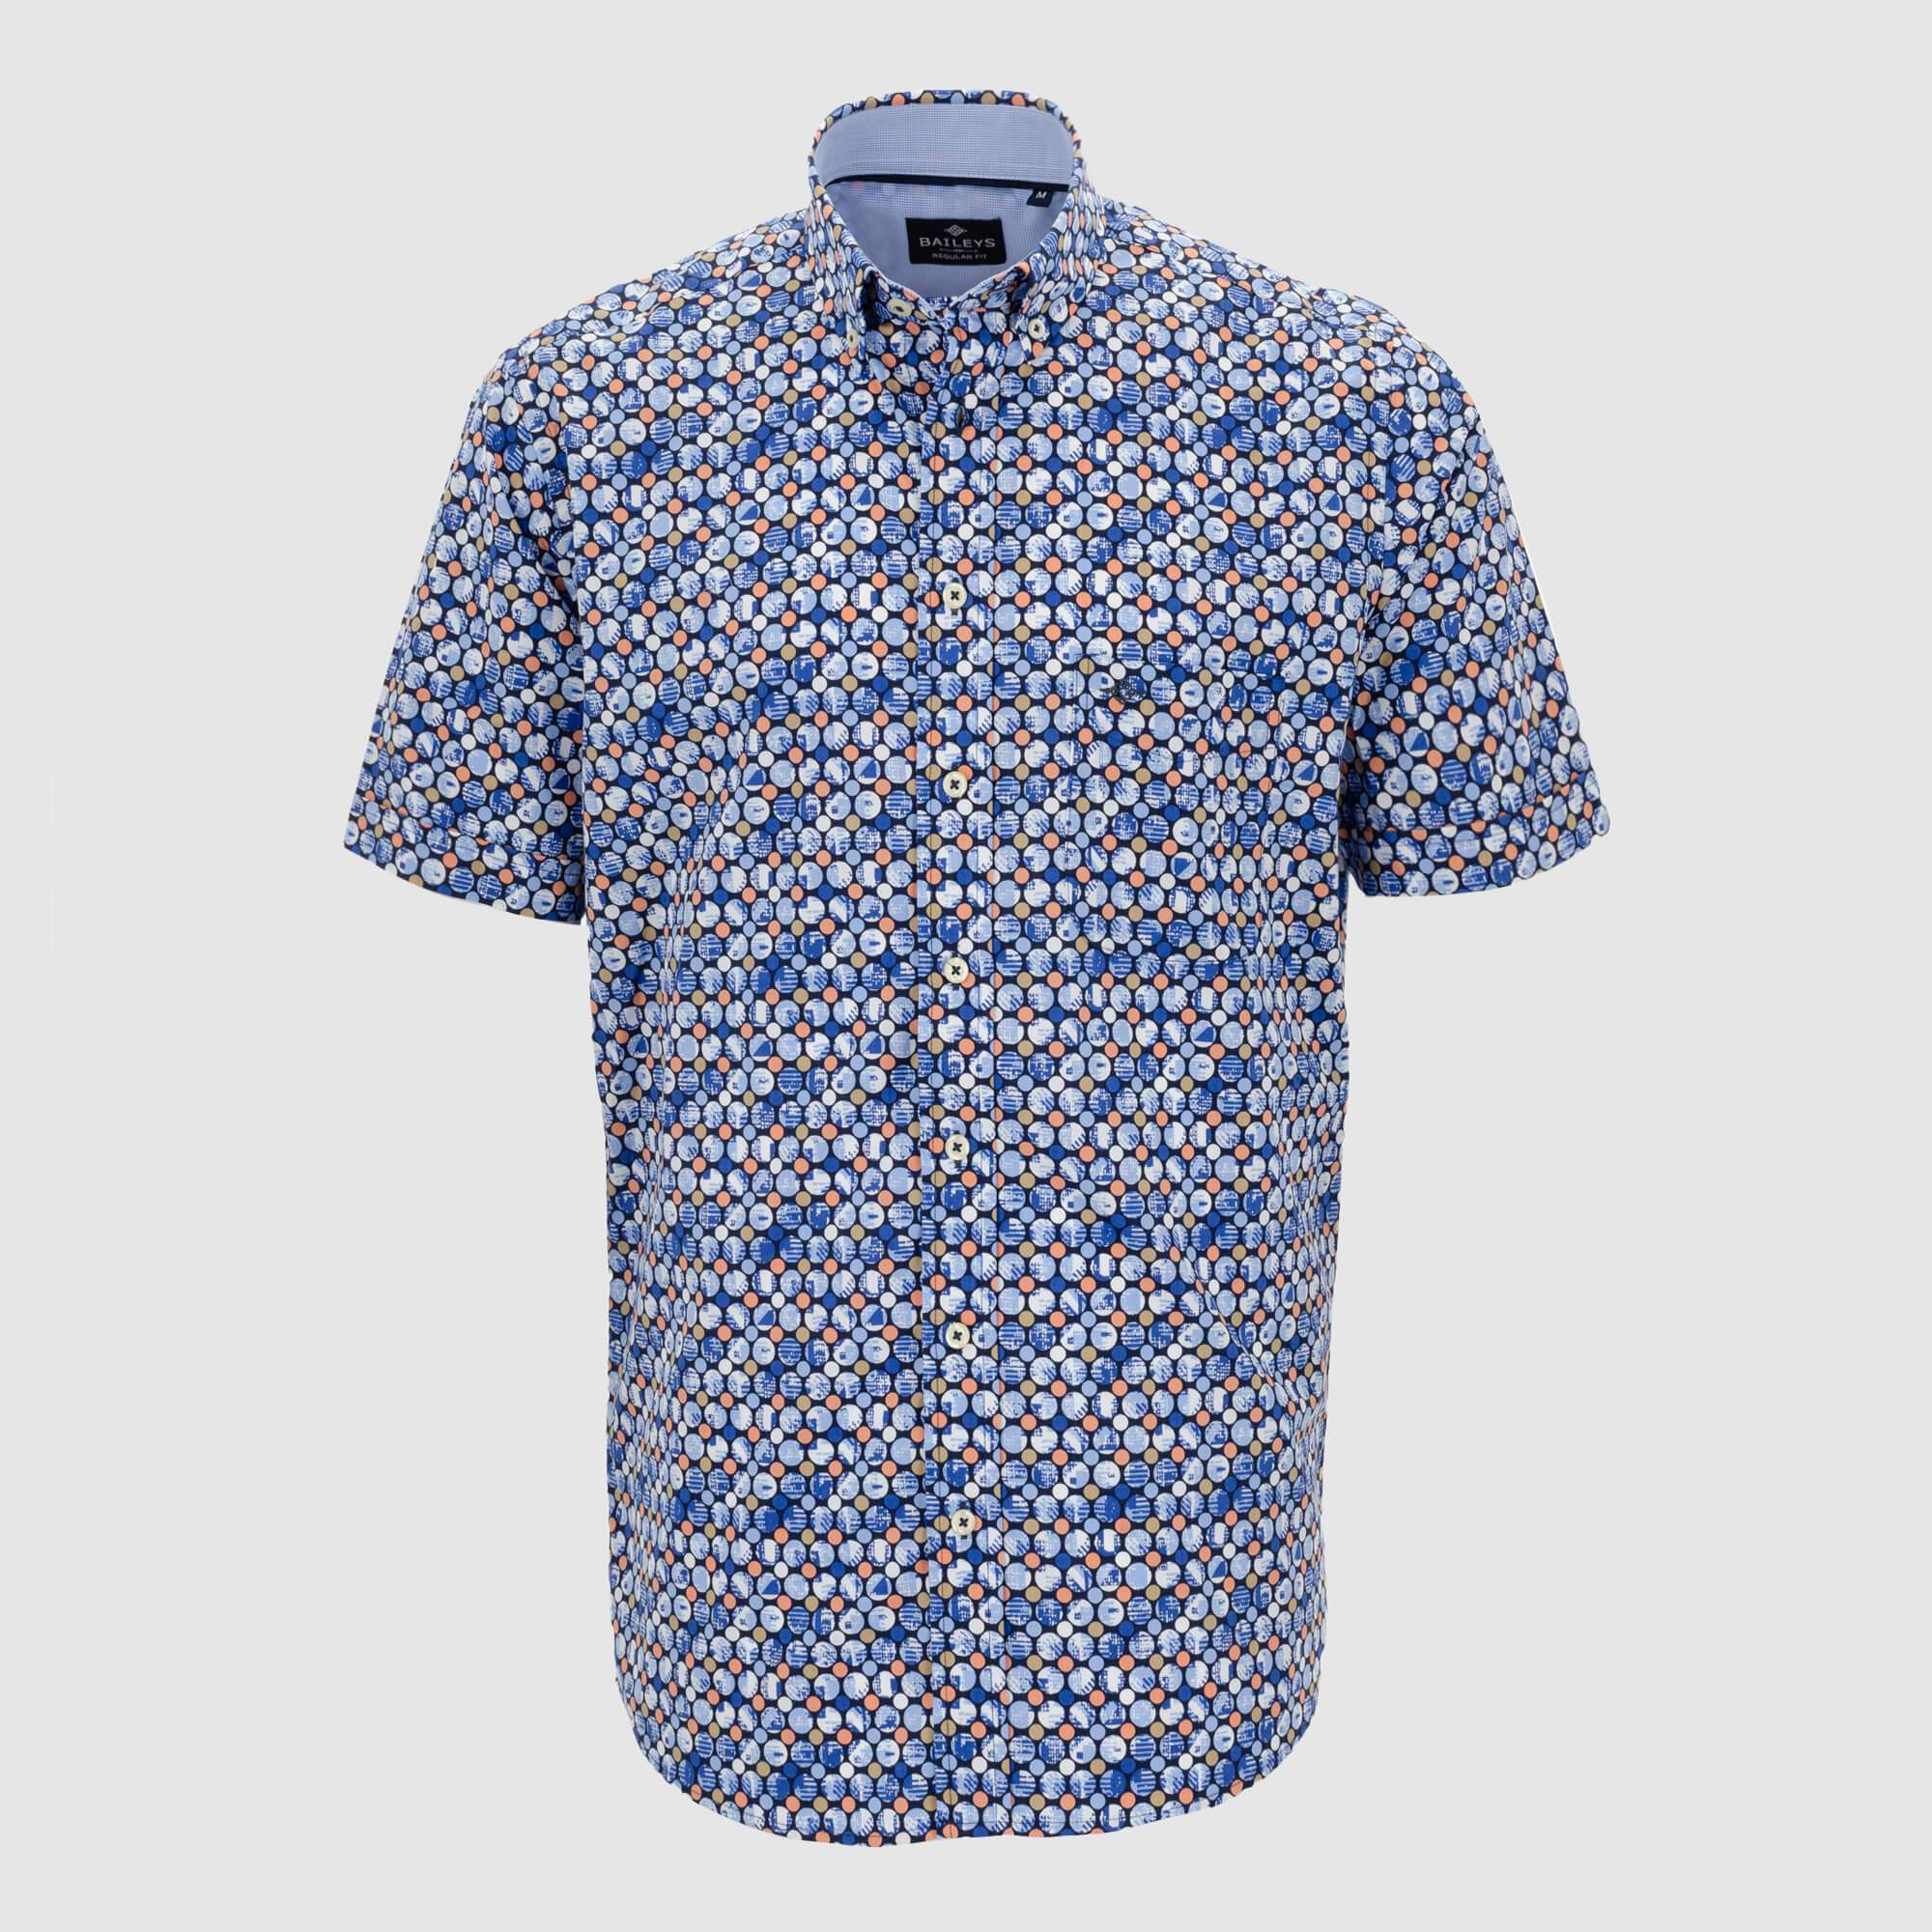 Camisa estampada manga corta regular fit 106686